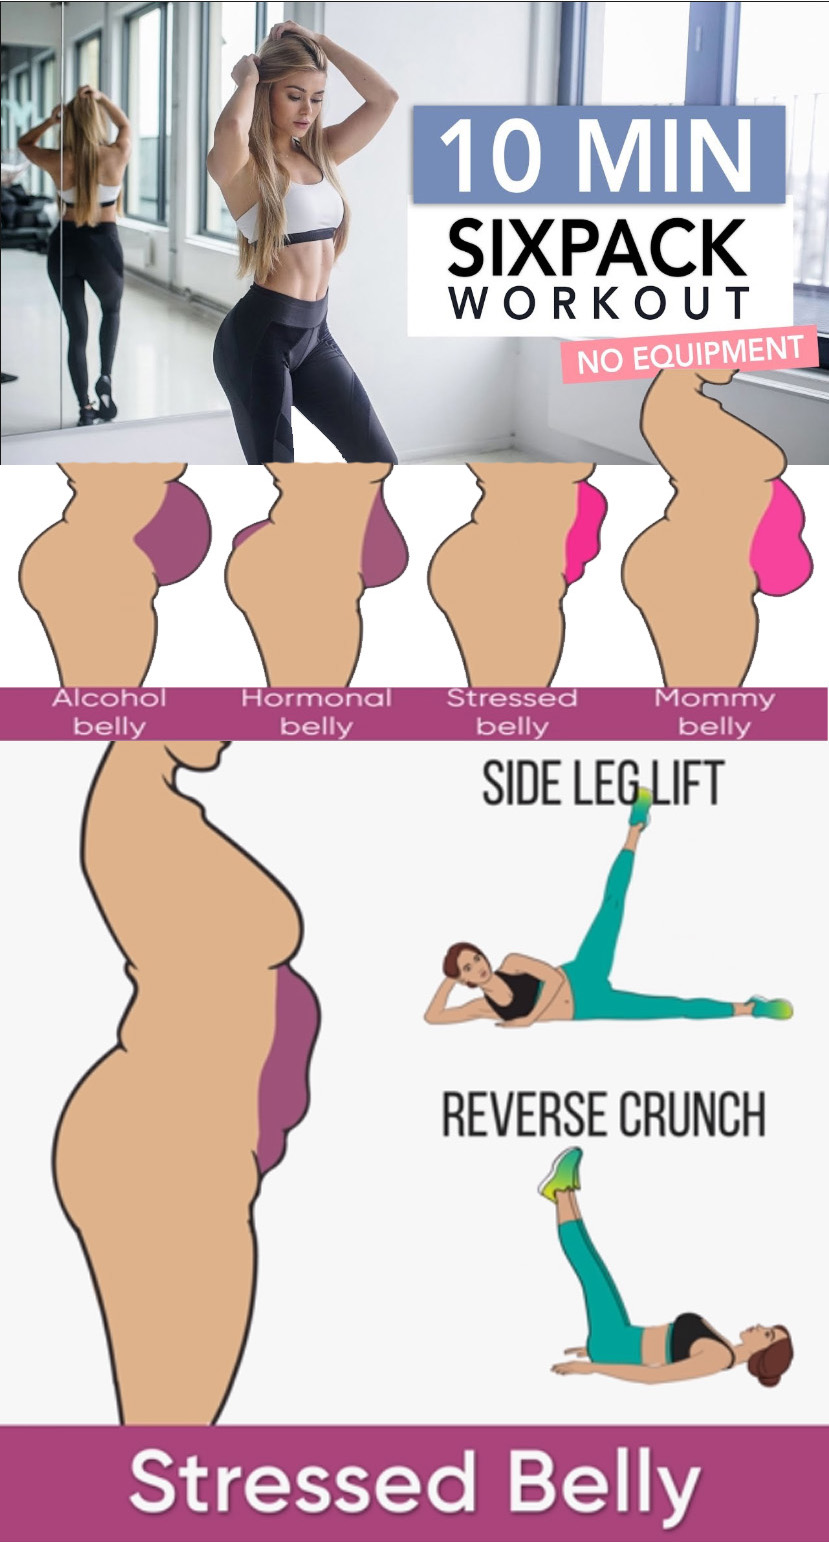 Six Pack workout for Belly